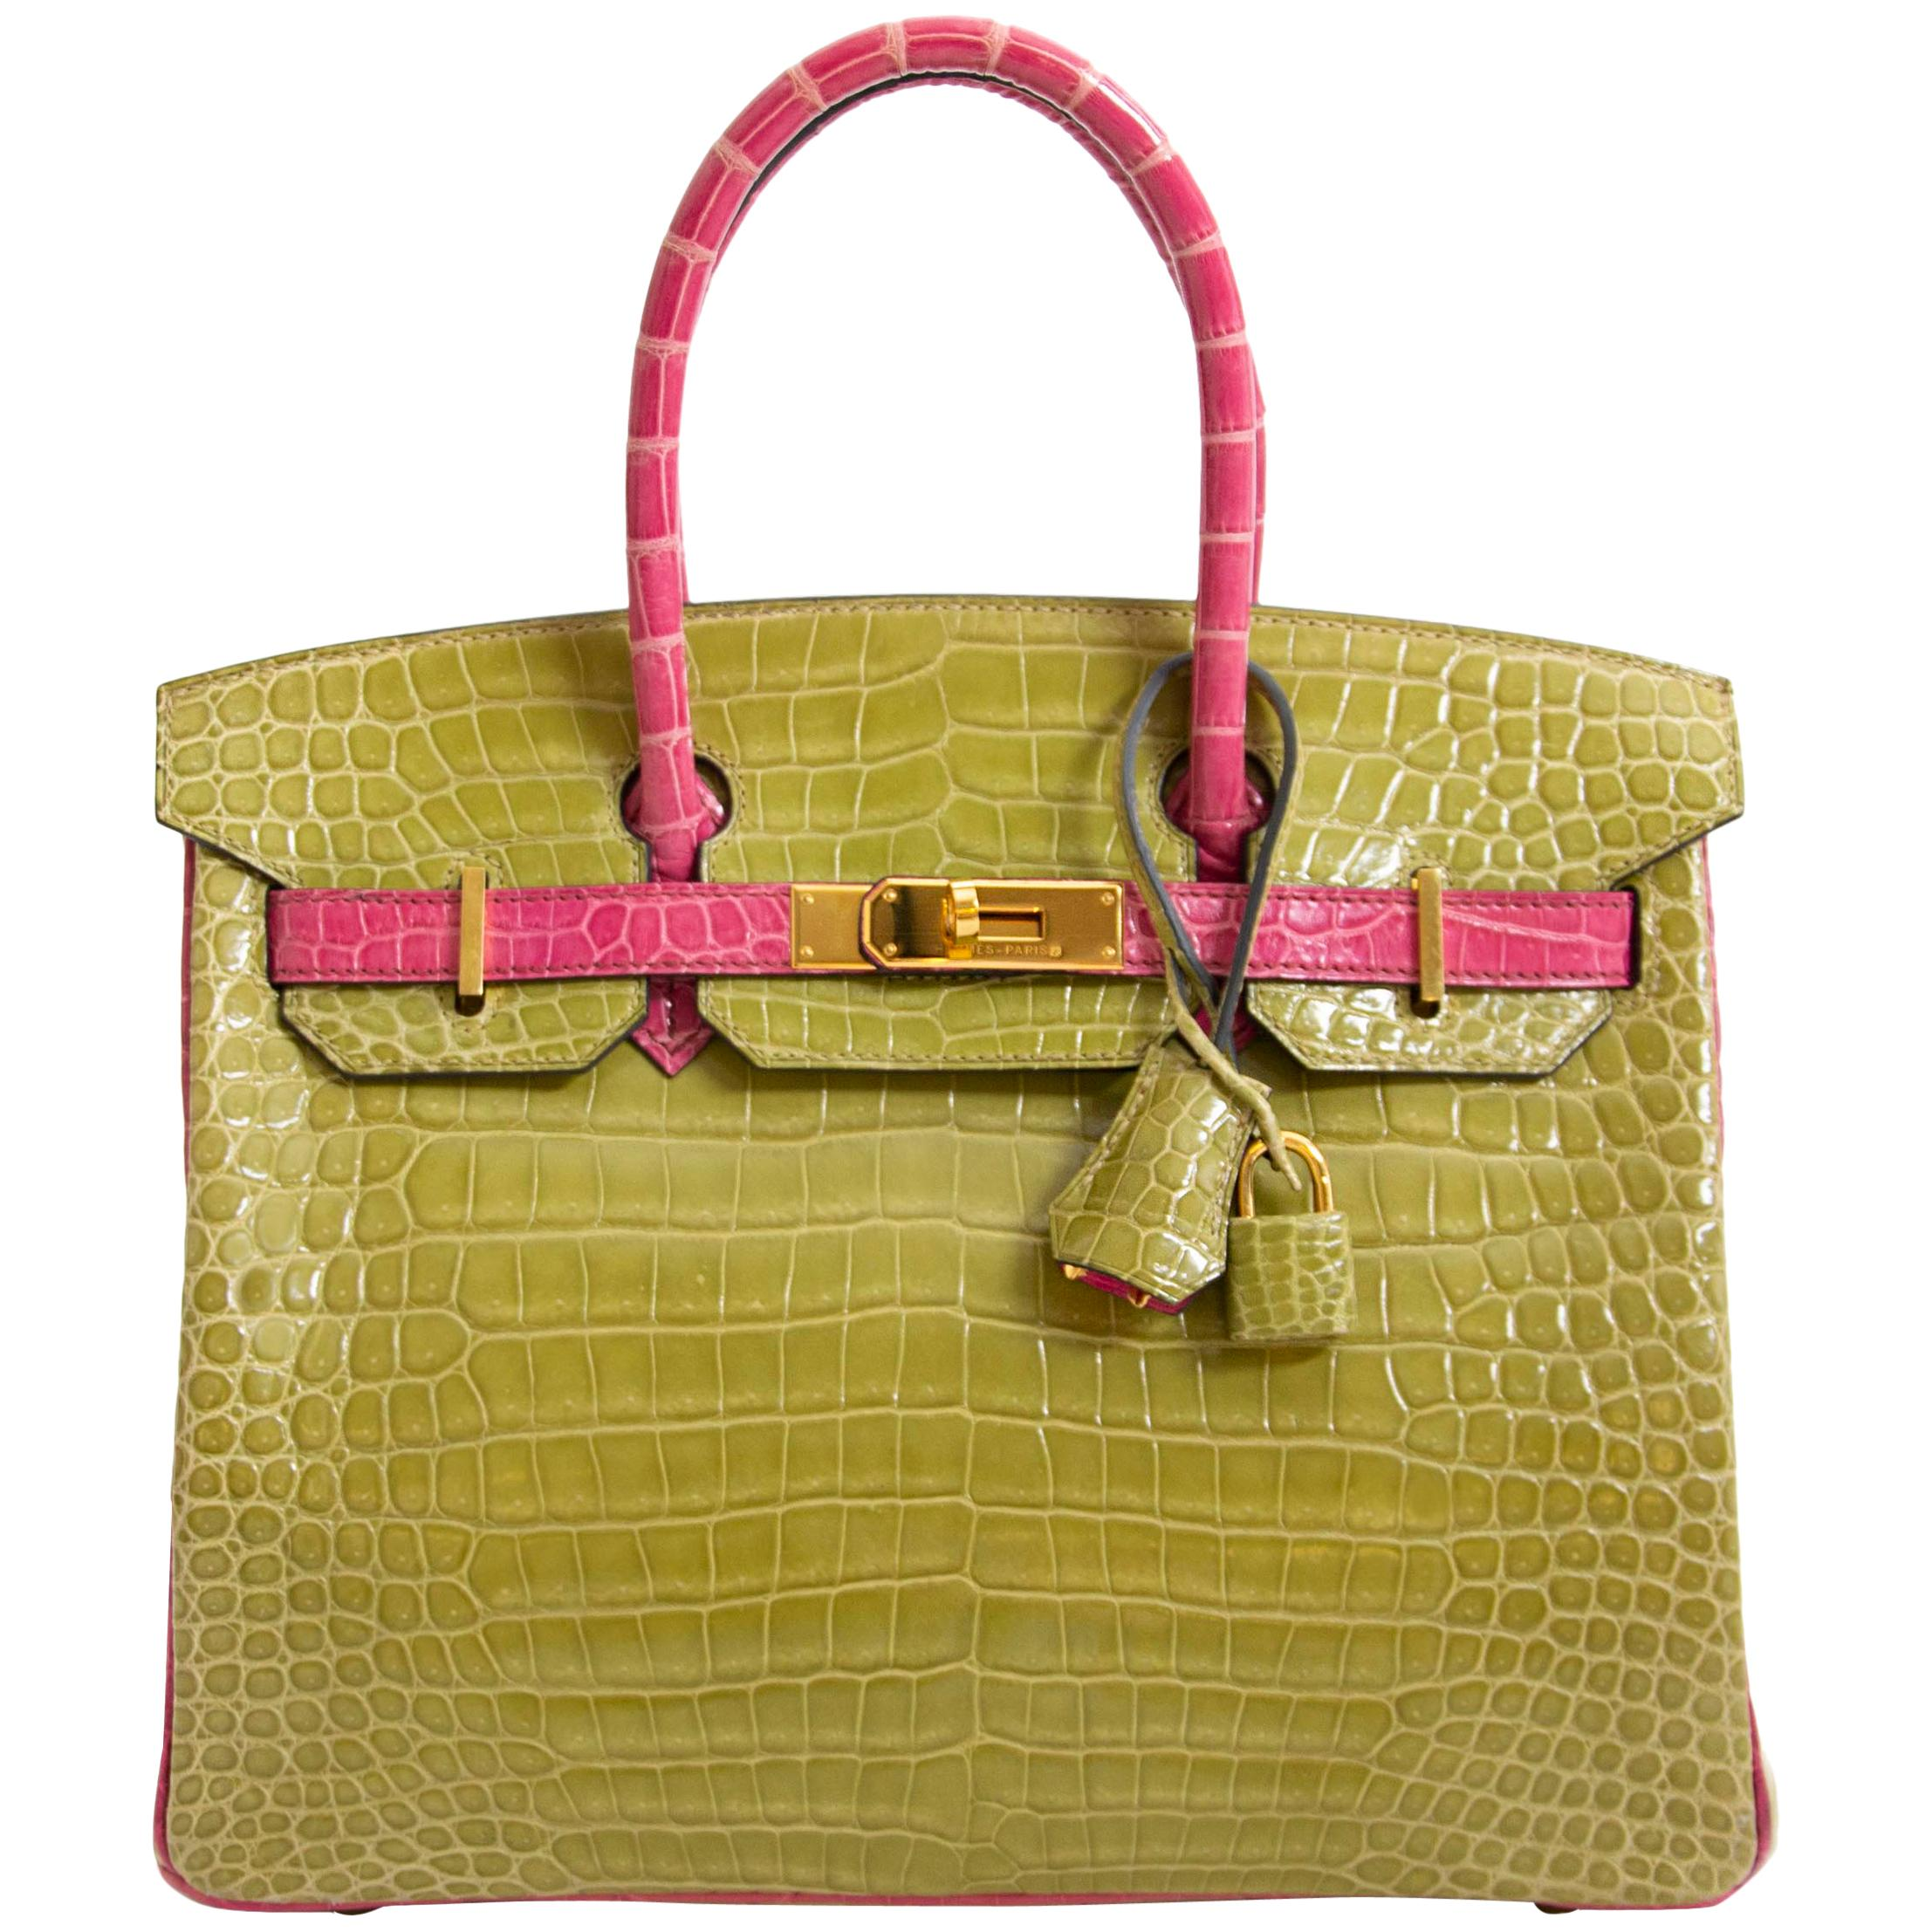 99c9dc1e9d Crocodile Birkin Bags - 108 For Sale on 1stdibs